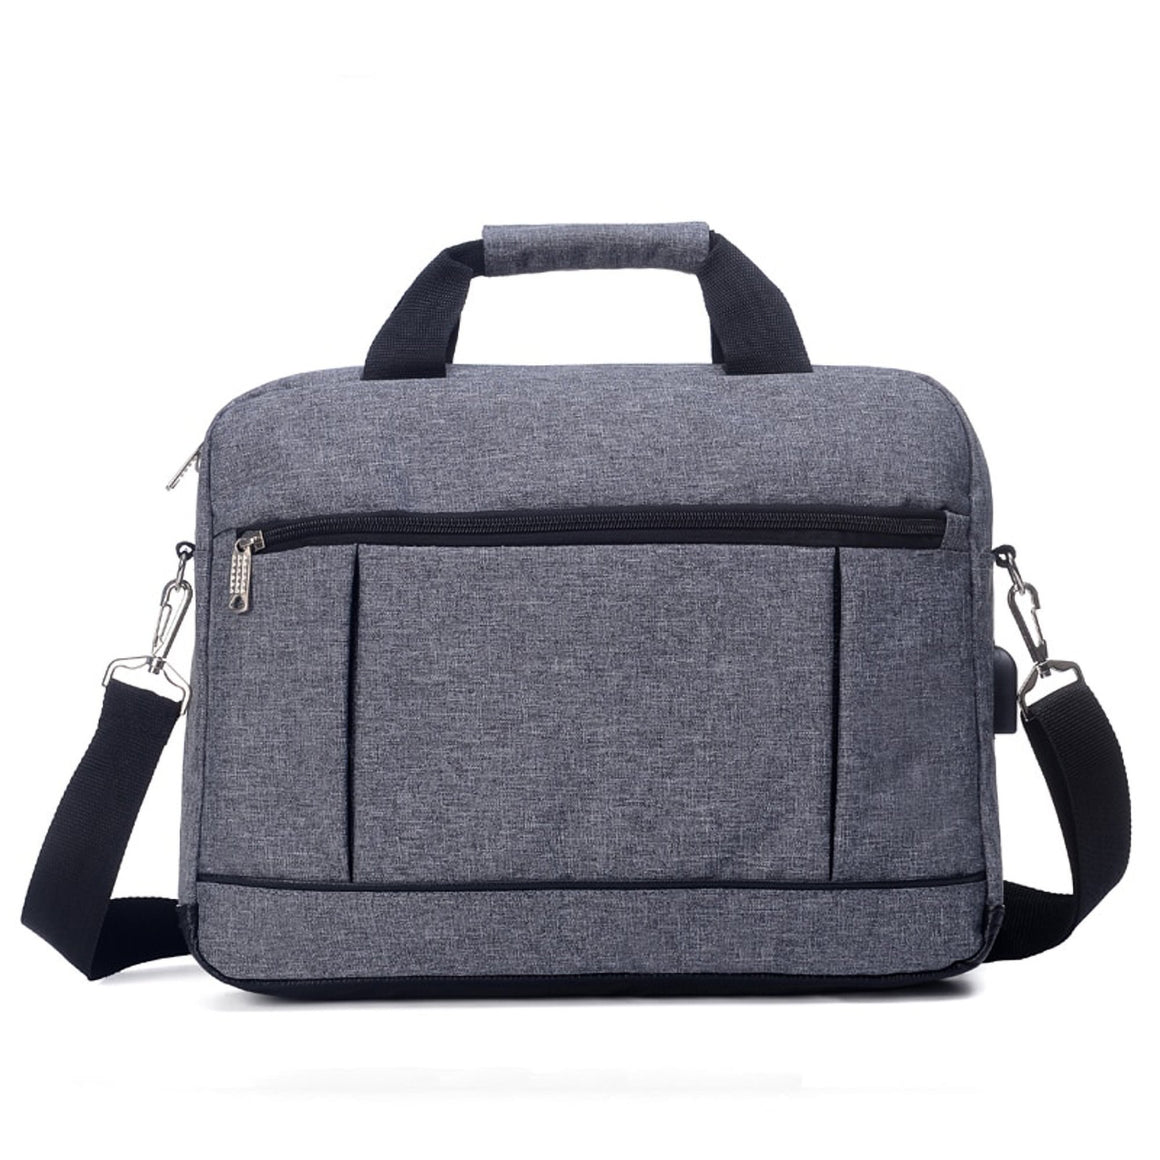 AUTEUIL Men's Briefcase USB Laptop Bag Male Simple Protfolio Office Business Handbag Maletin Hombre EH1512 bolsa masculina Sale